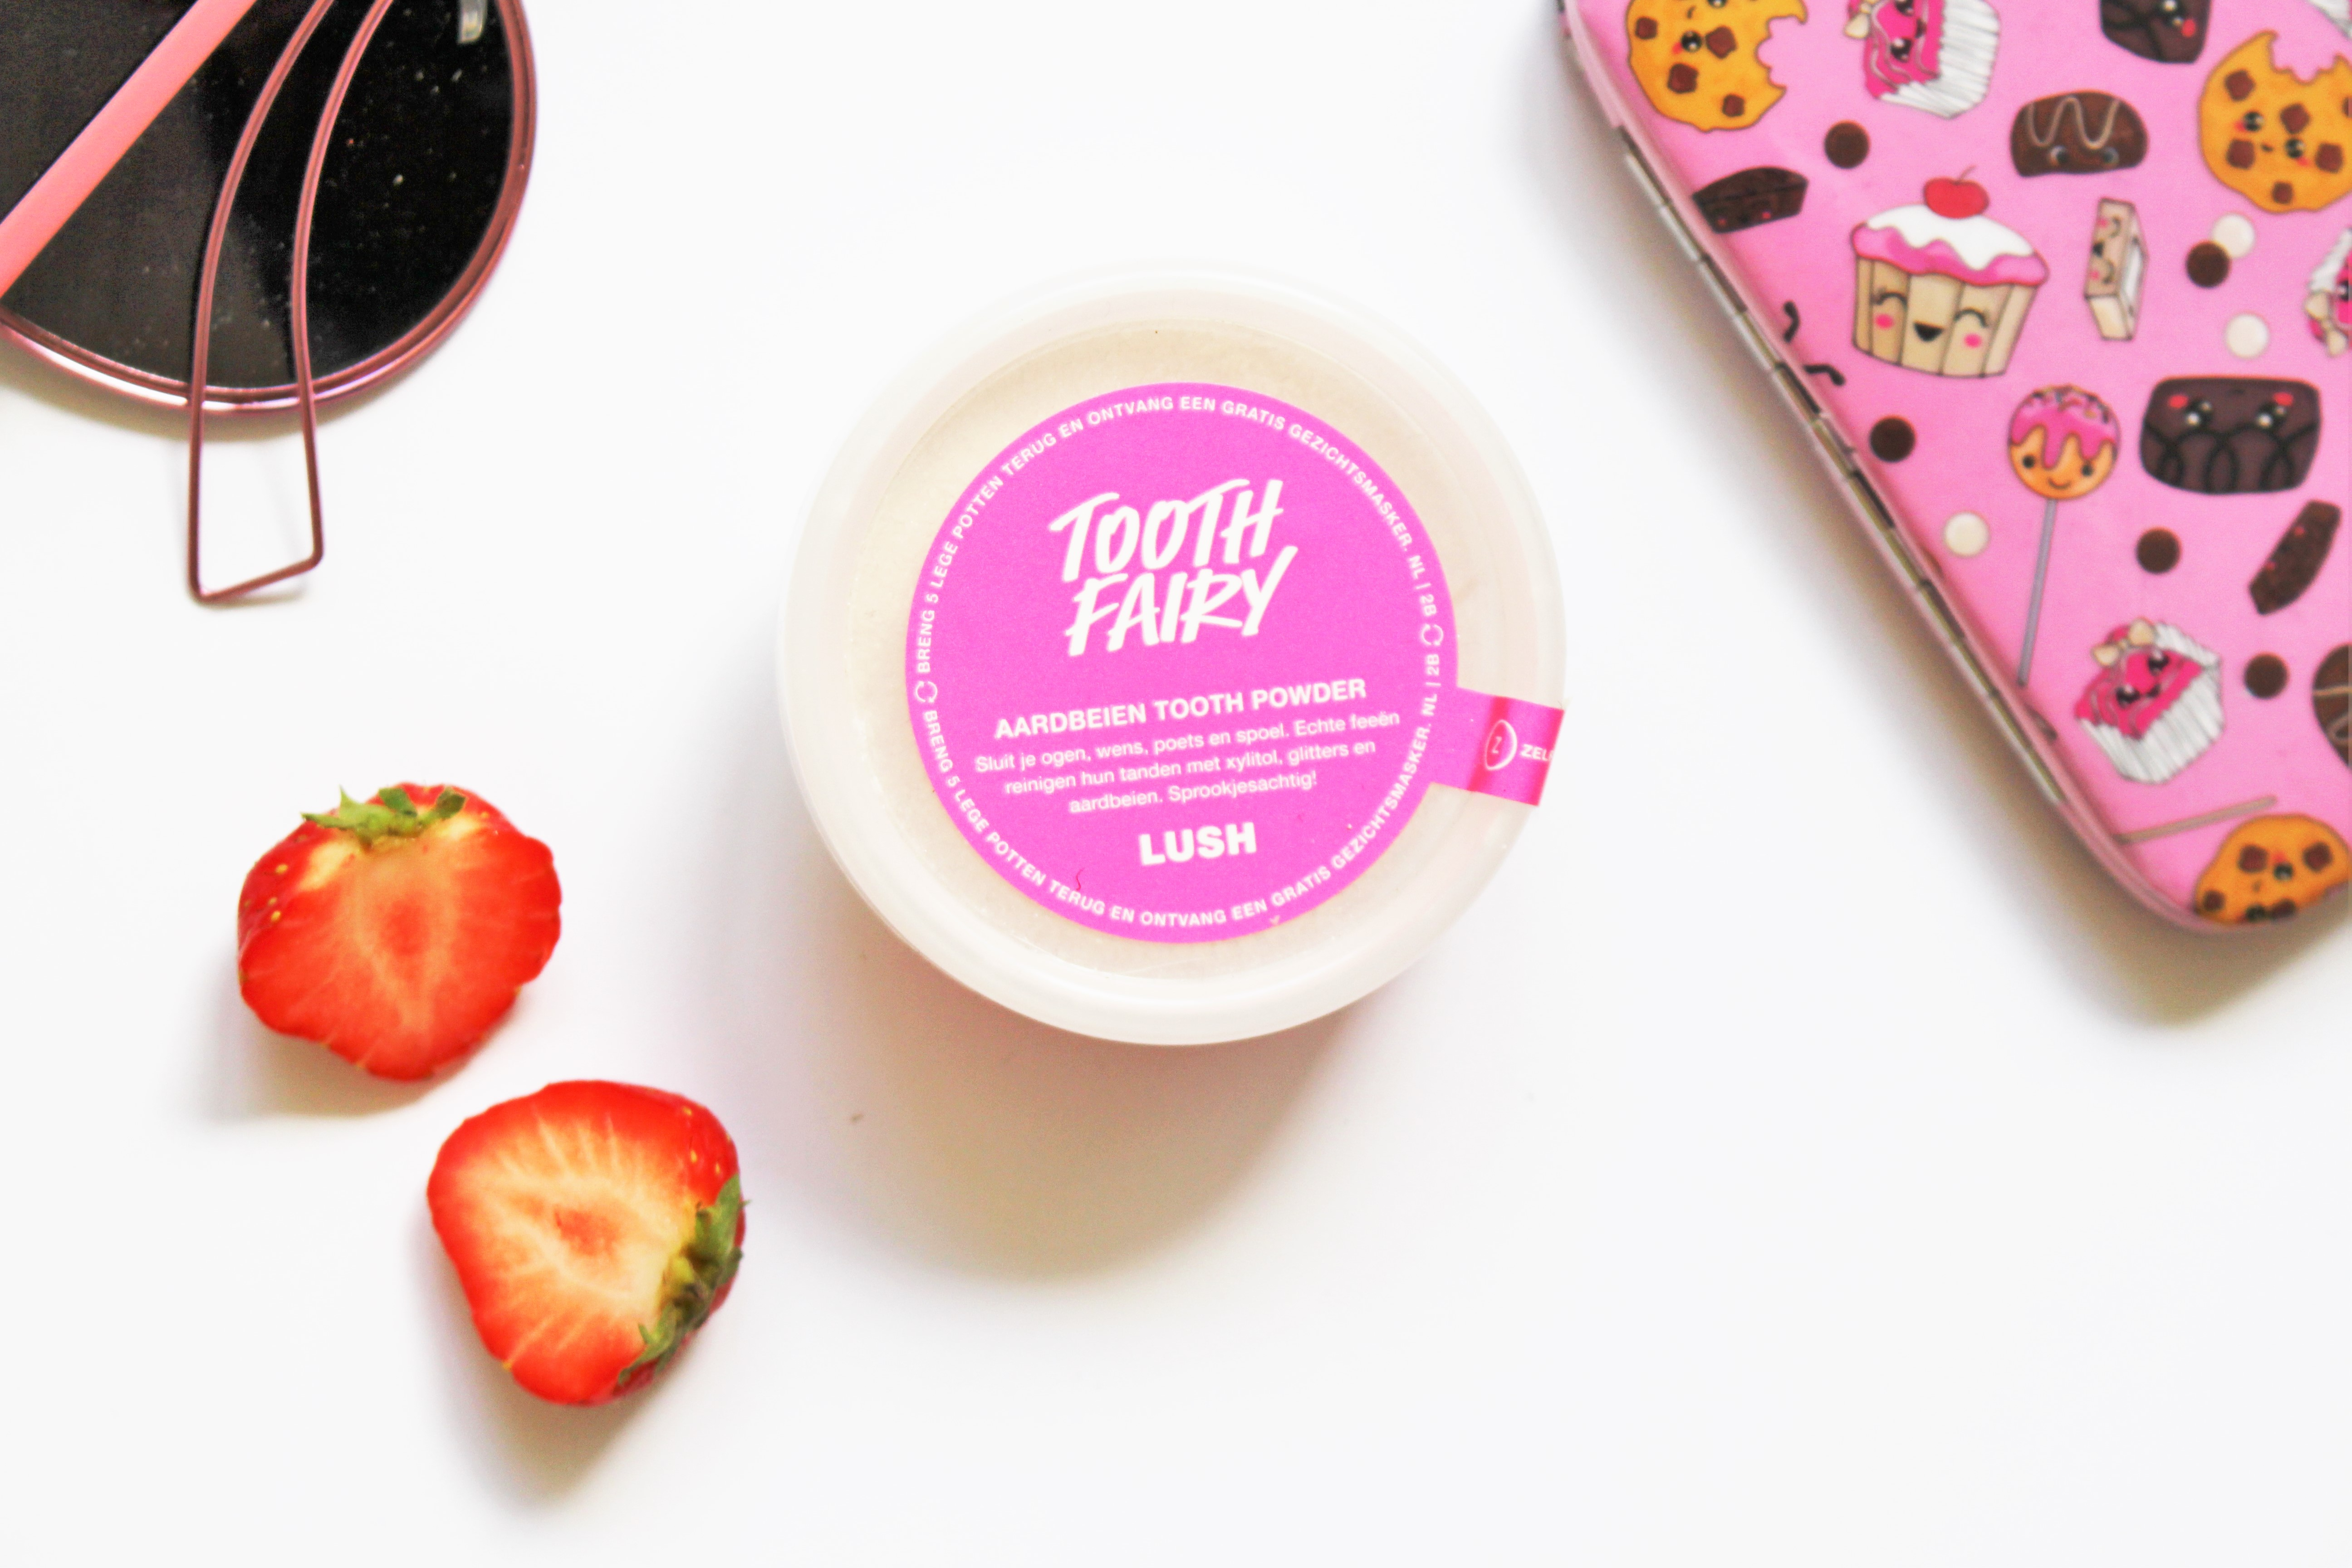 Lush Tooth Fairy review